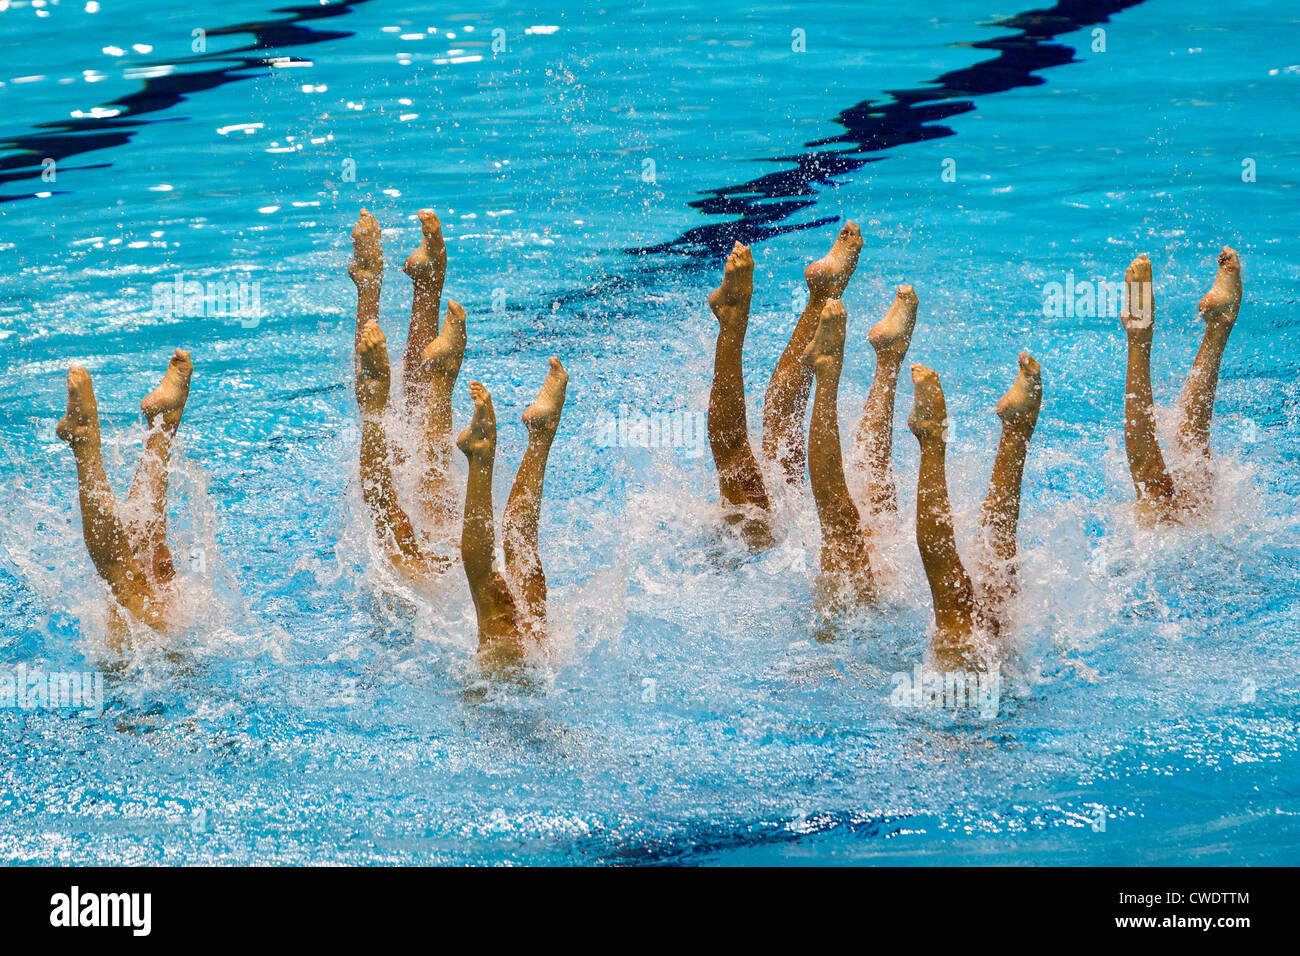 Synchronized Swimming team at the Olympic Summer Games, London 2012 - Stock Image